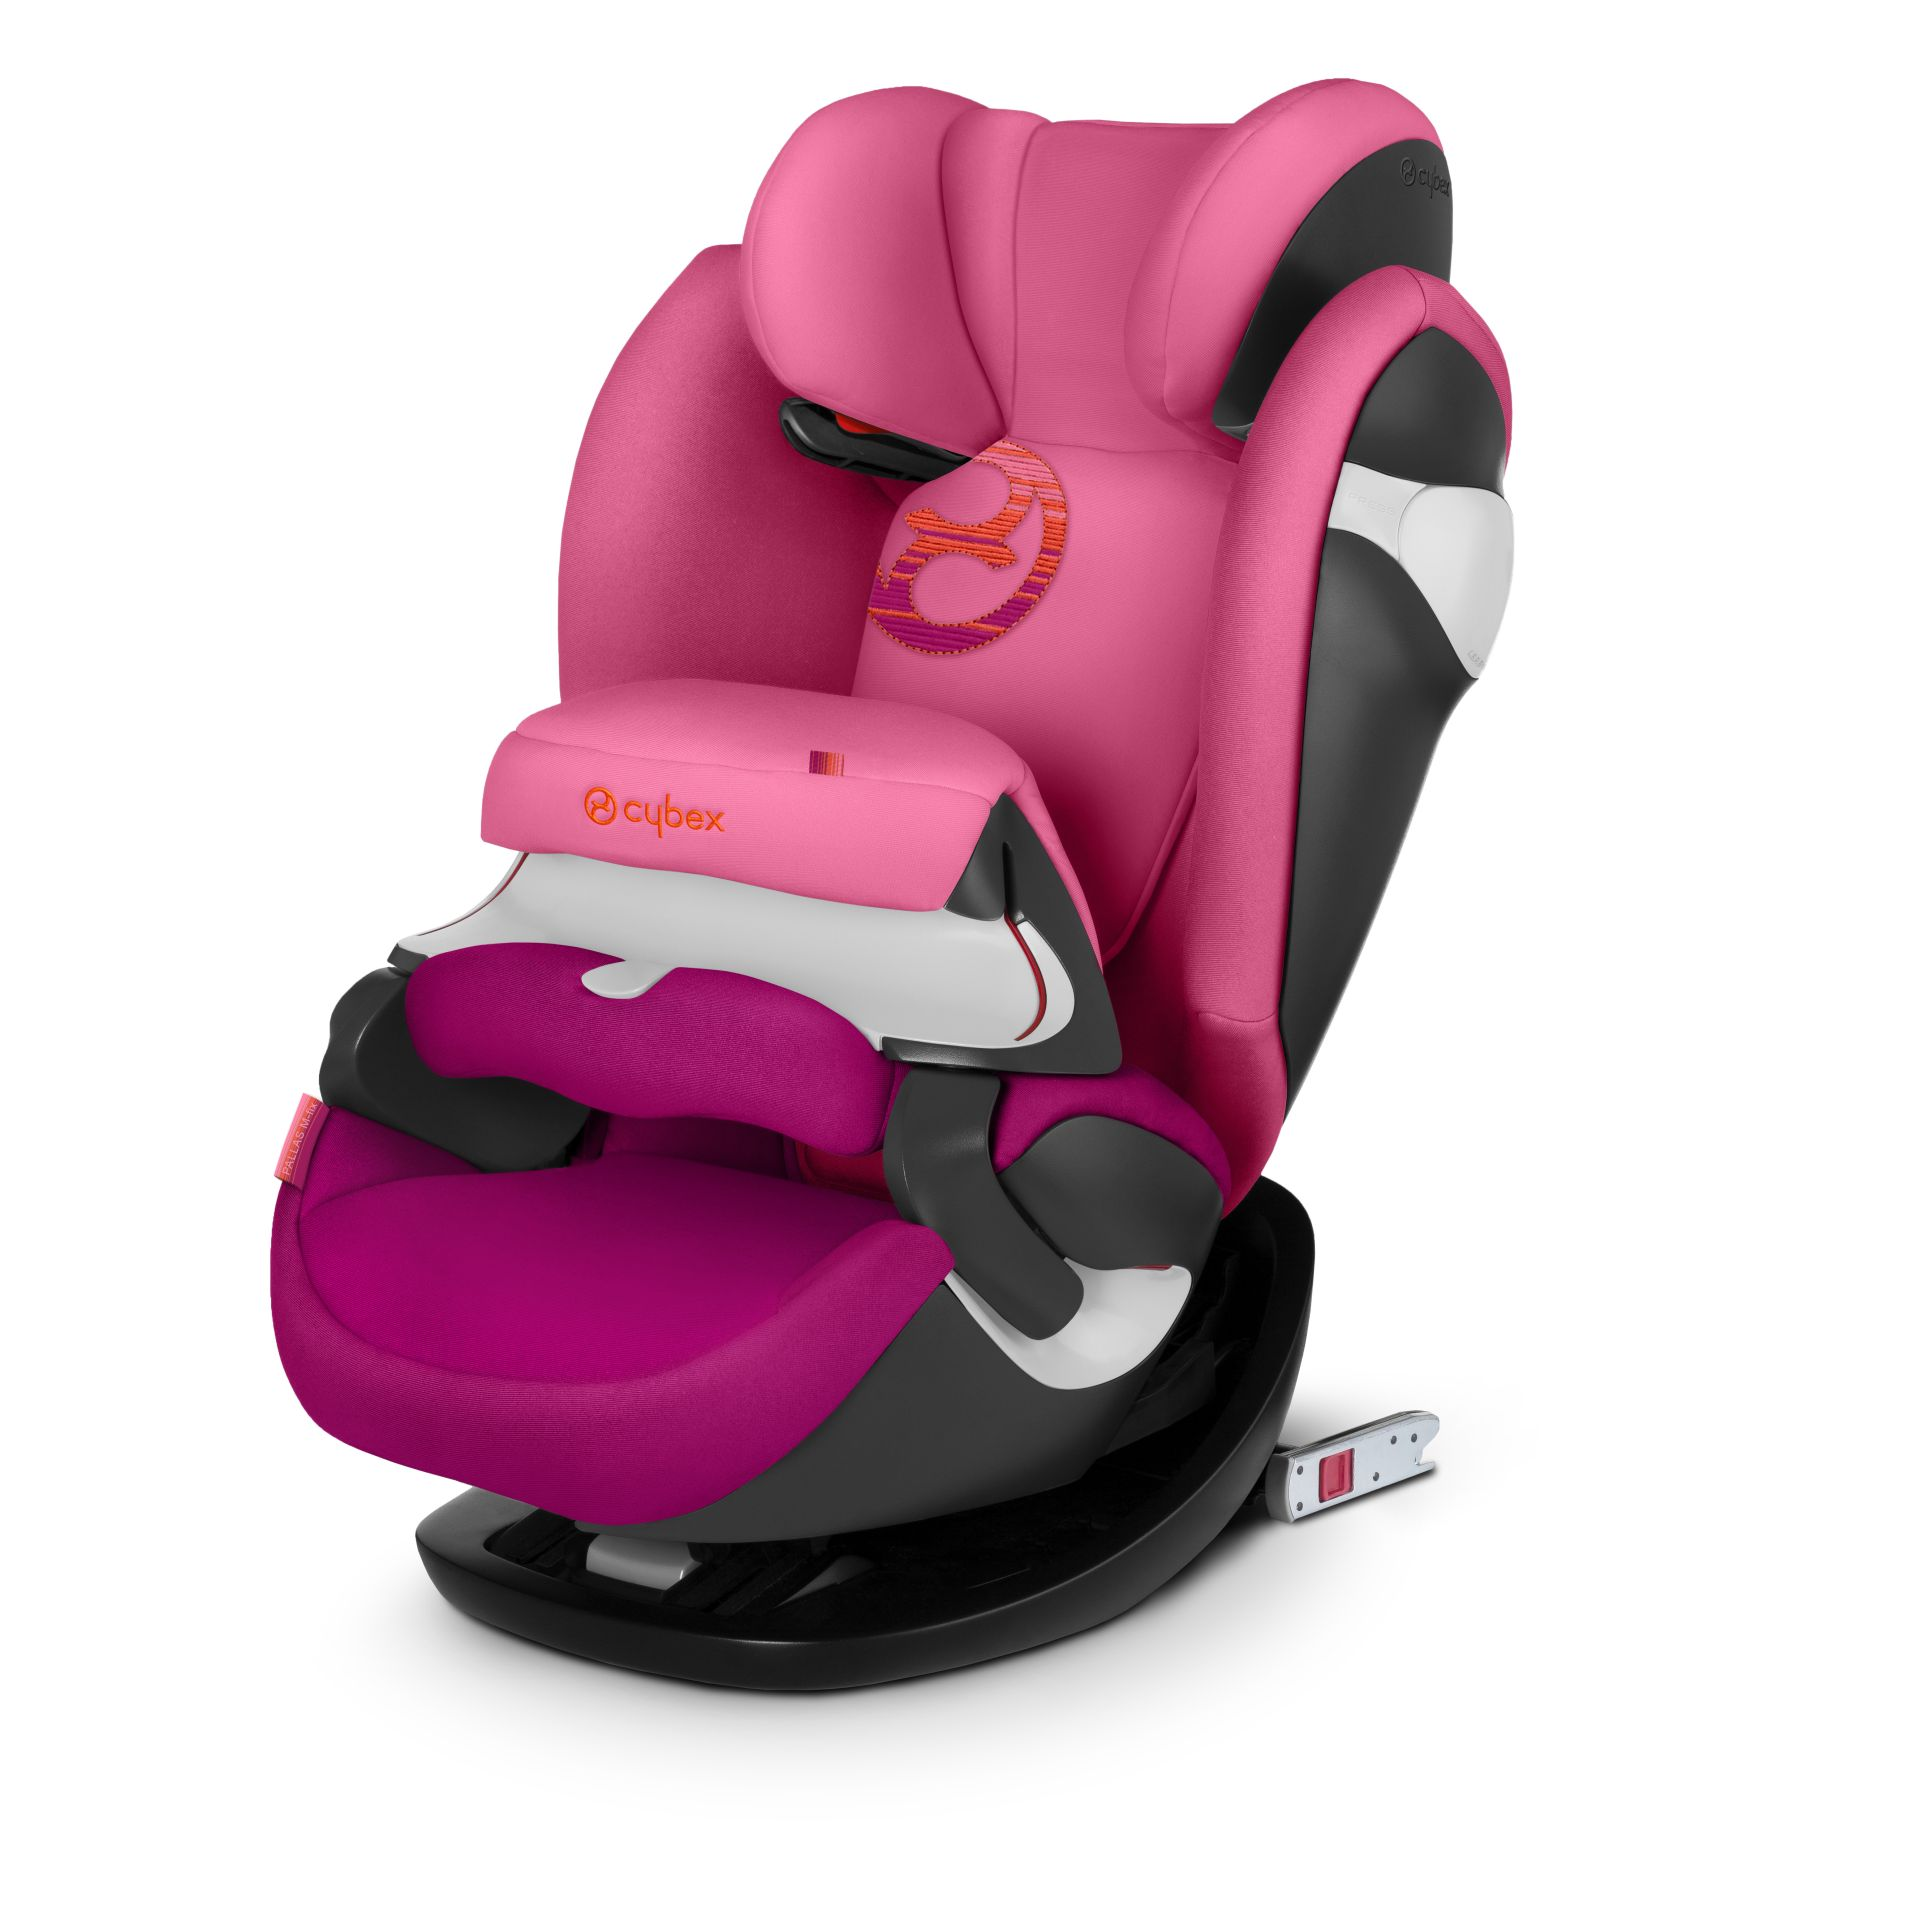 cybex child car seat pallas m fix 2018 passion pink purple buy at kidsroom car seats. Black Bedroom Furniture Sets. Home Design Ideas